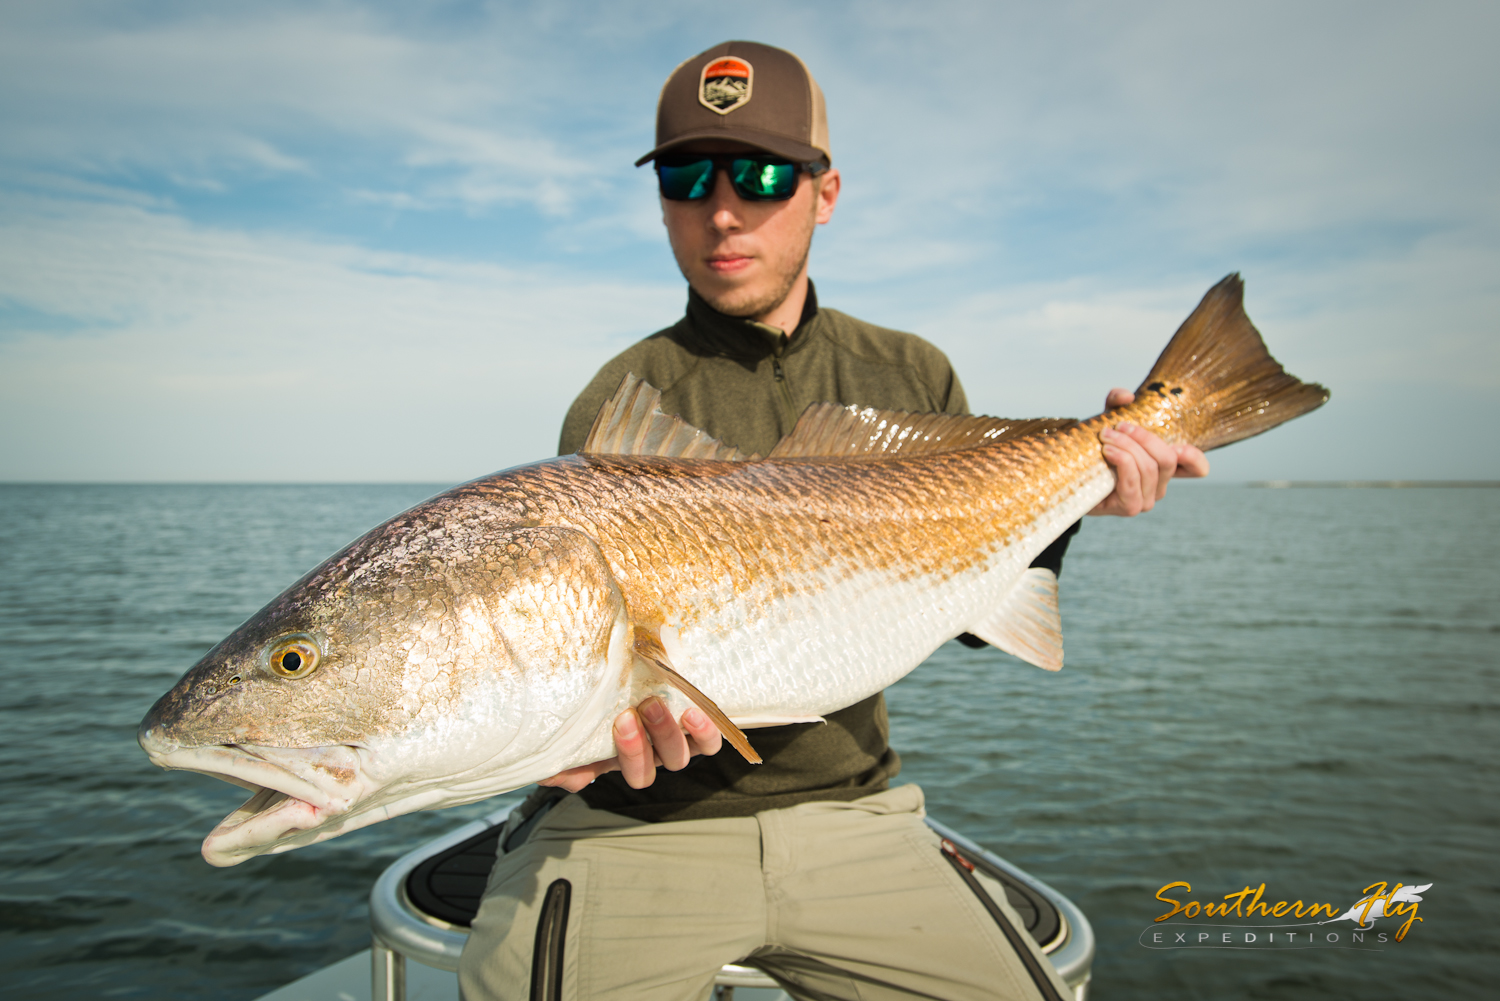 Fly Fishing Houma Louisiana with Southern Fly Expeditions